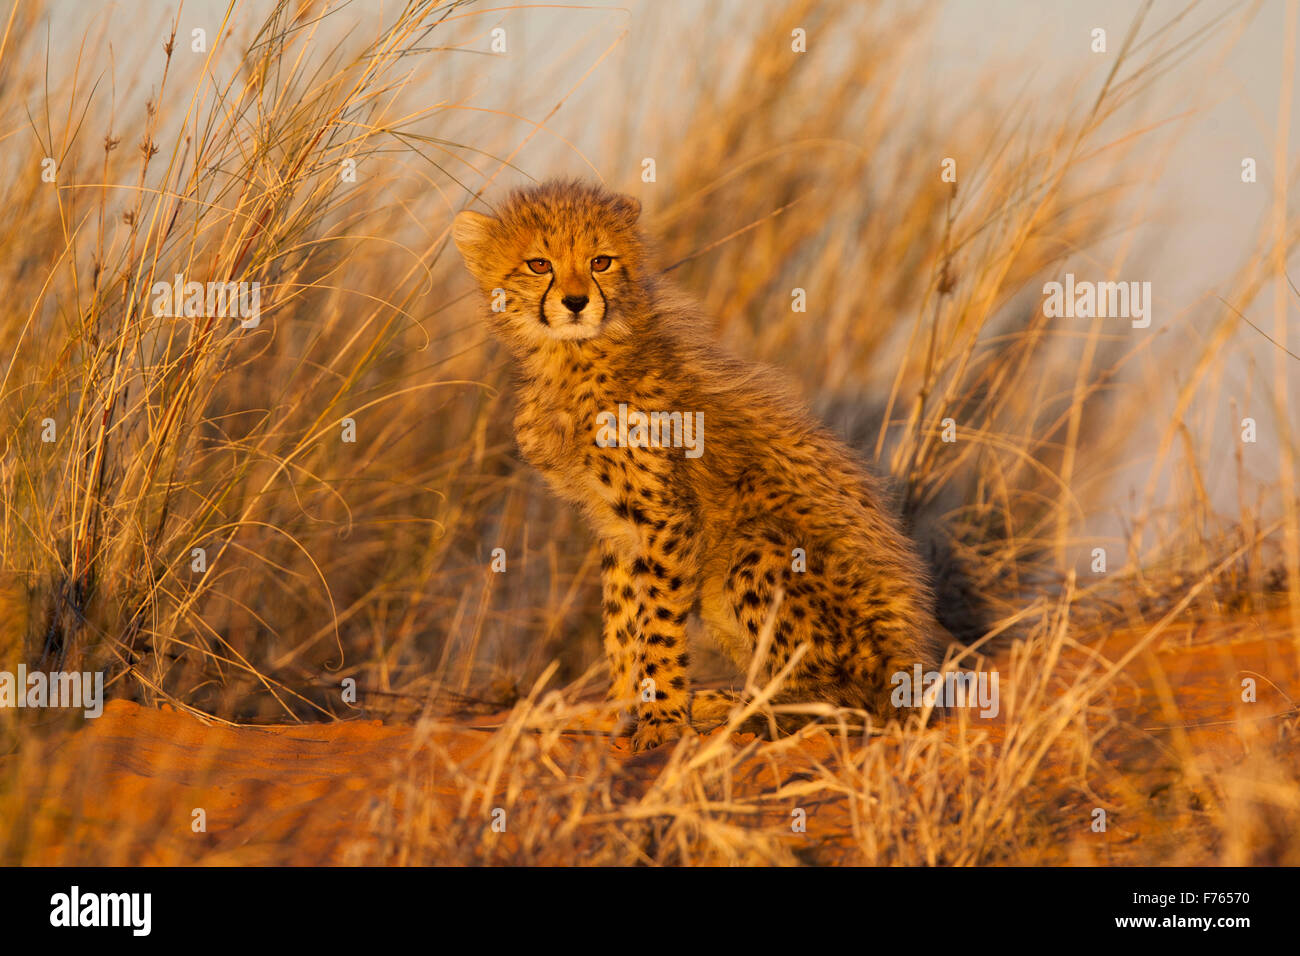 Cheetah cub sitting on a sand dune bathed in sunlight in the Kgalagadi Transfrontier Park - Stock Image